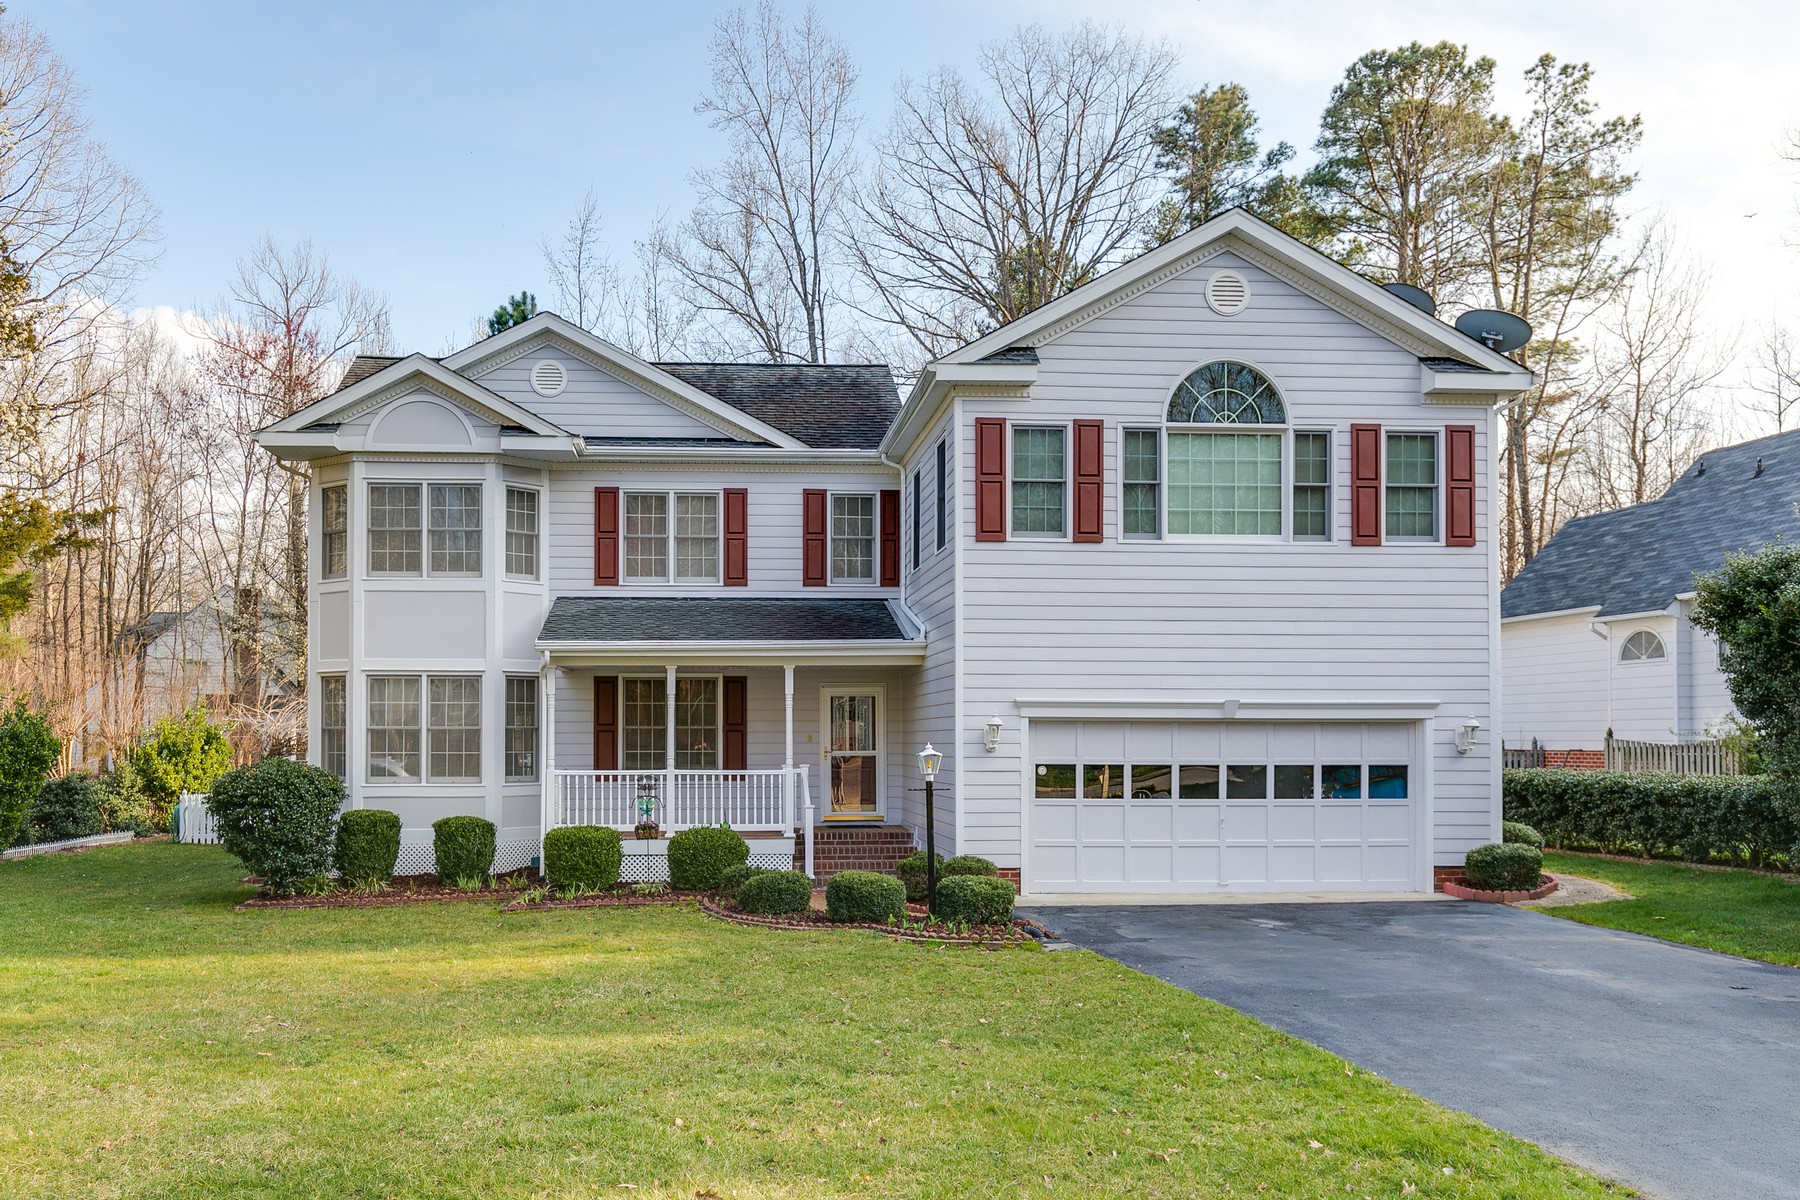 Single Family Home for Sale at 15013 Rosebay Forest Drive, Midlothian 15013 Rosebay Forest Dr Midlothian, Virginia 23112 United States